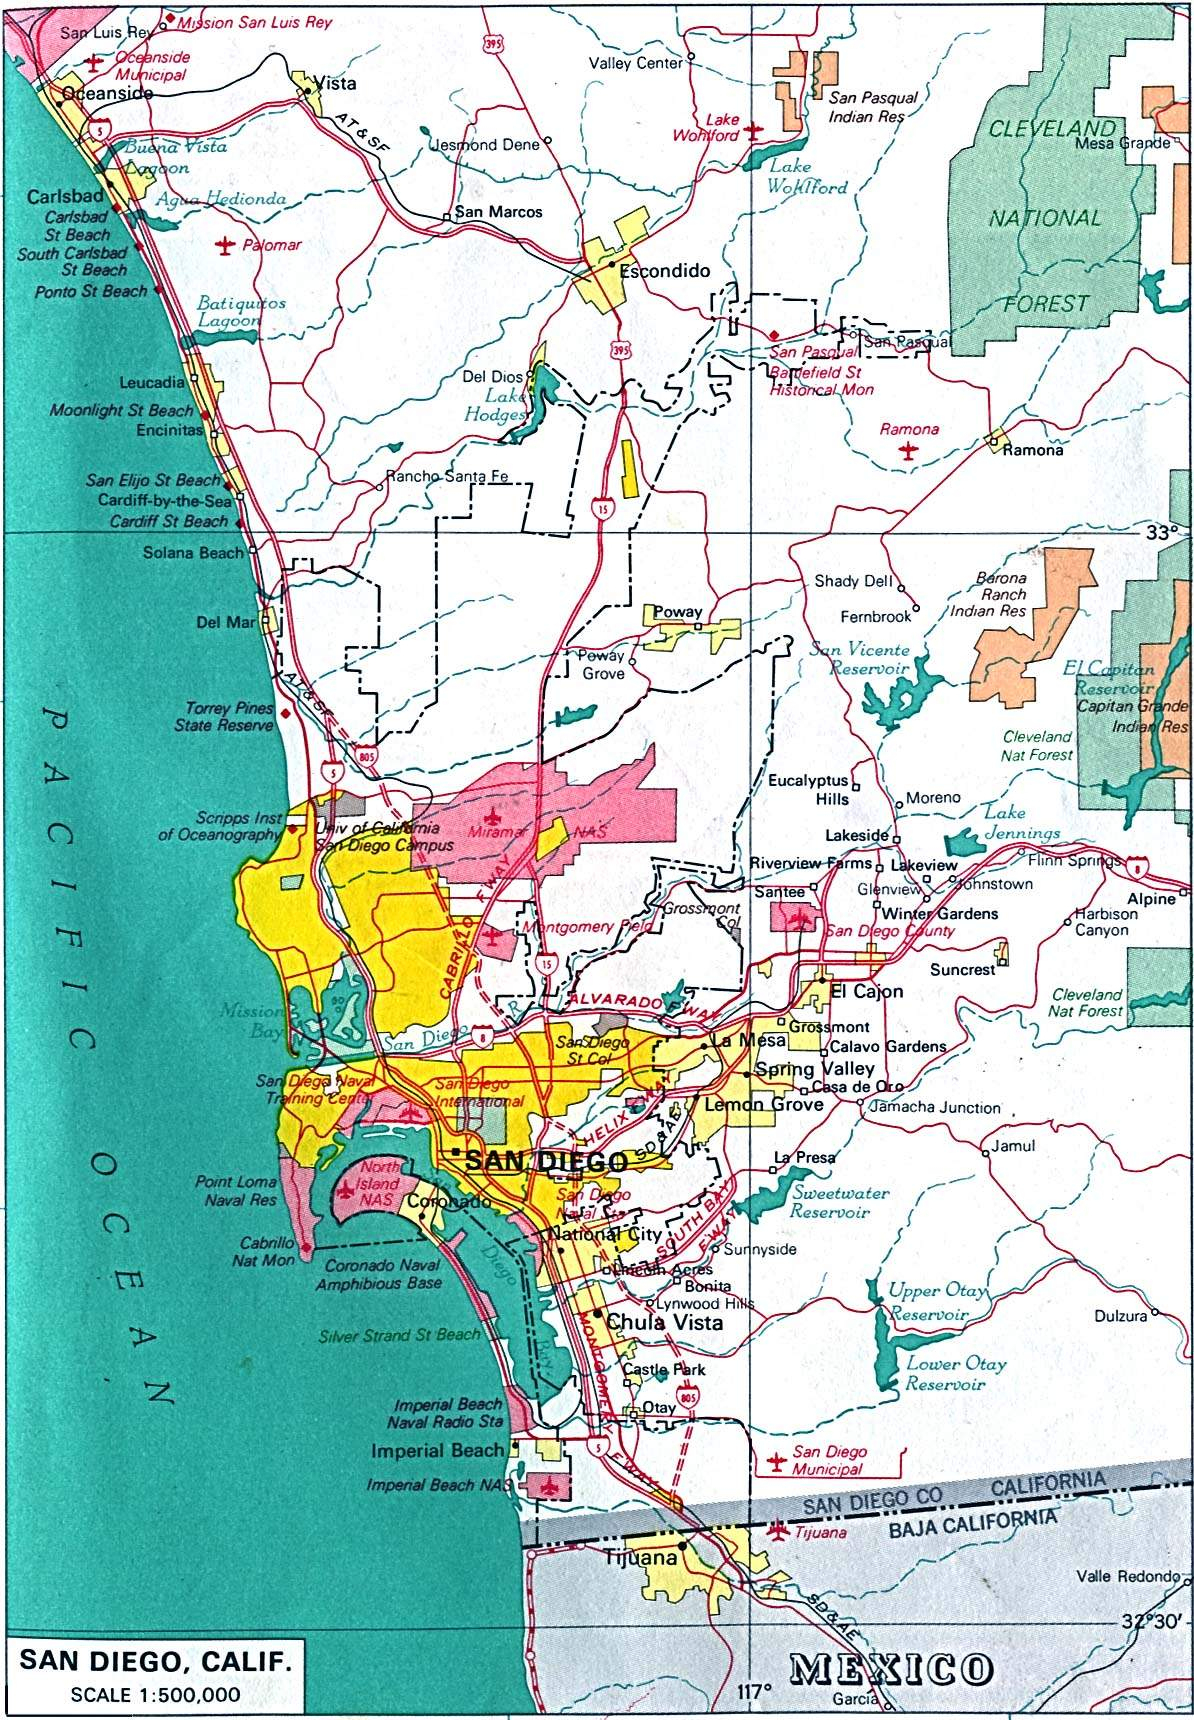 Large San Diego Maps For Free Download And Print | High-Resolution - San Diego Attractions Map Printable